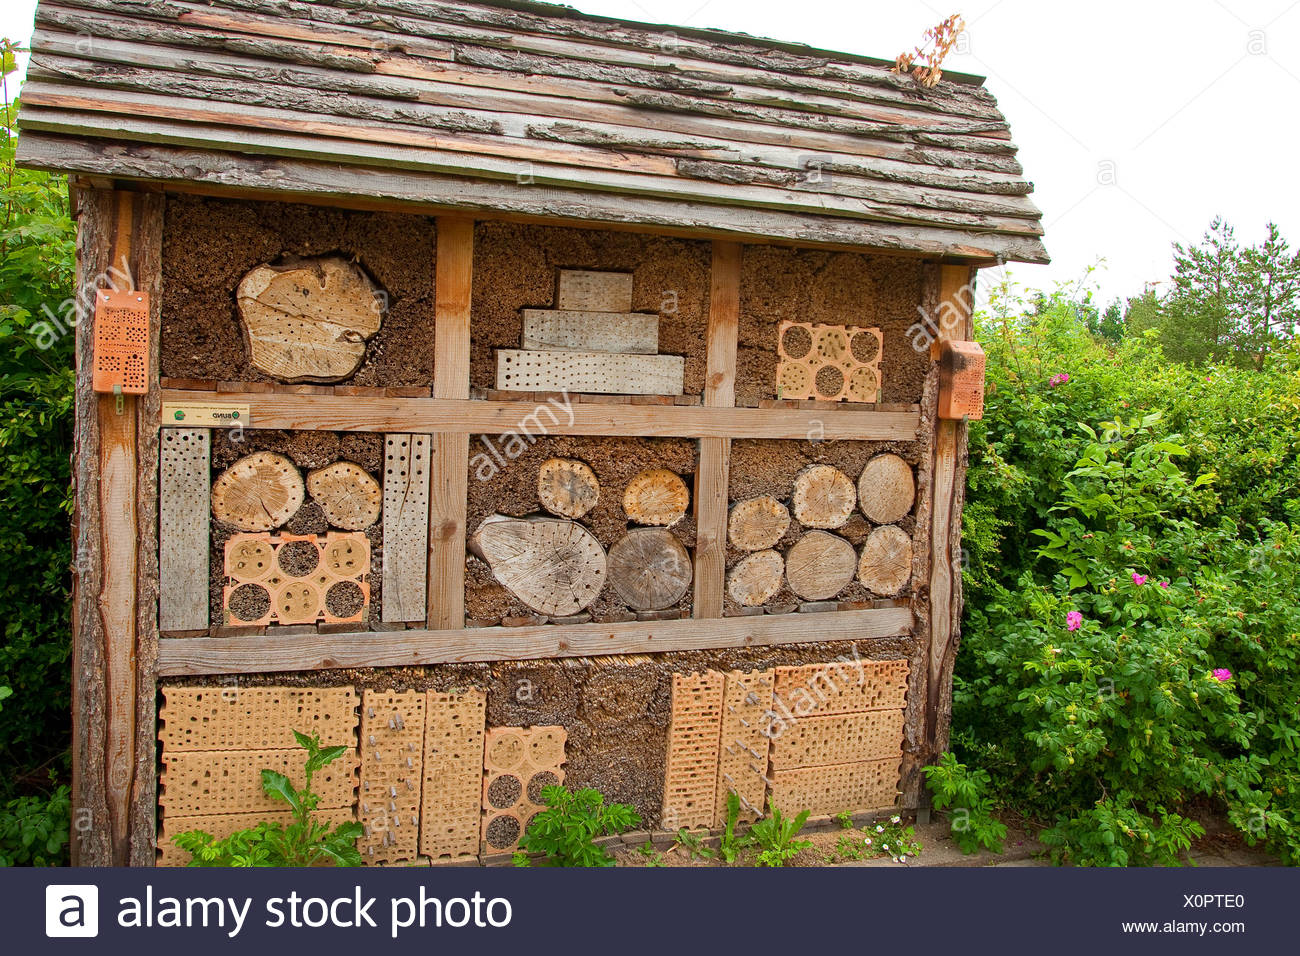 insect hotel in a garden, Germany - Stock Image